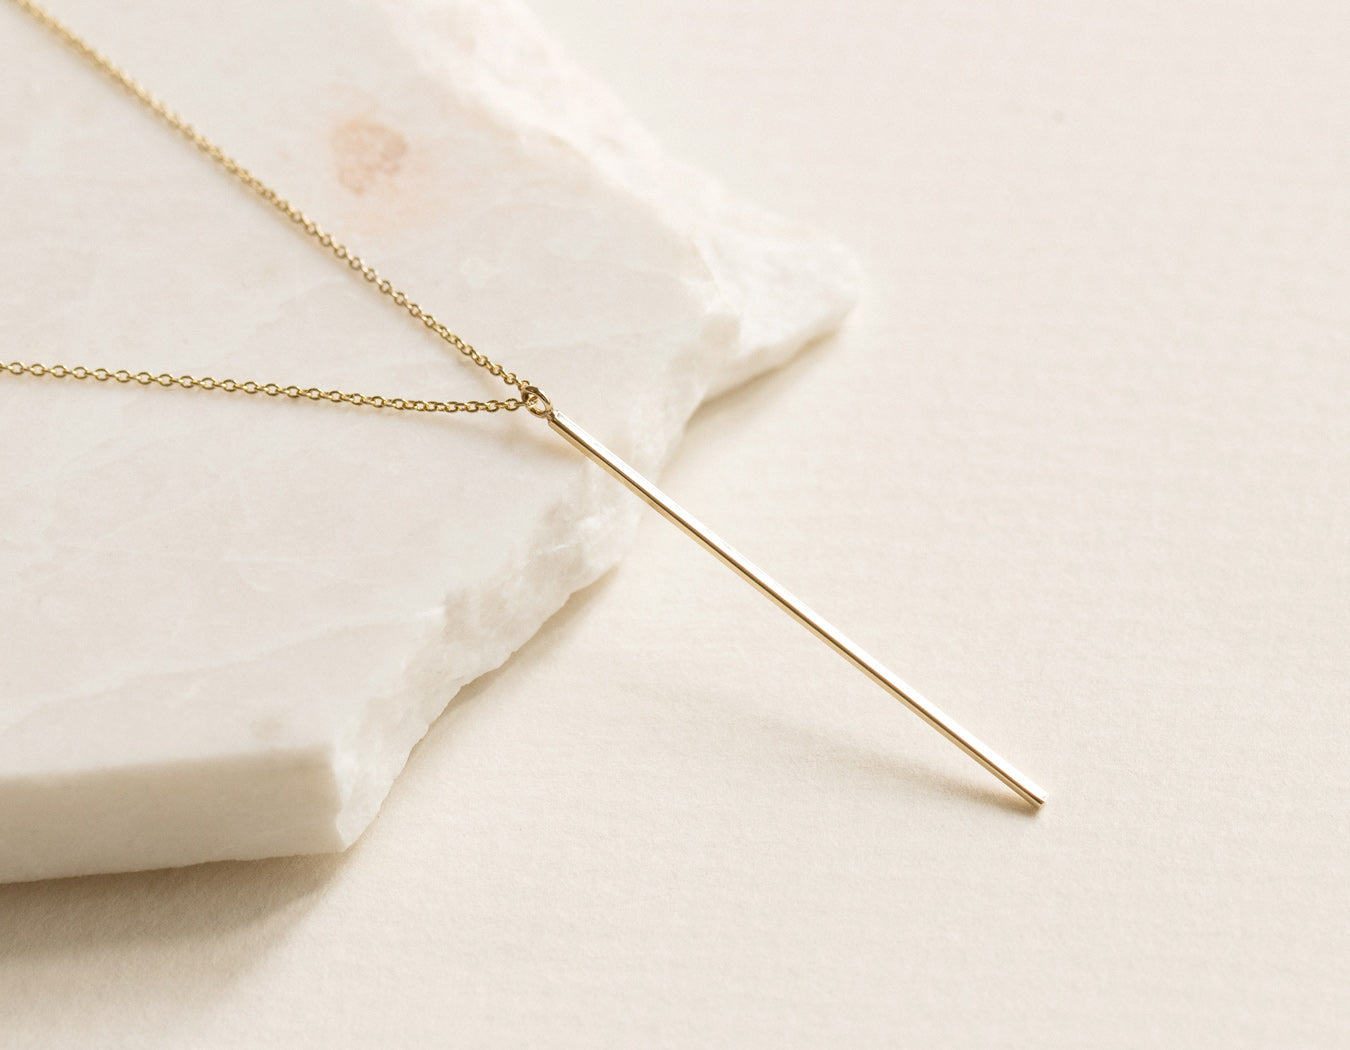 14k yellow gold Vertical Bar Necklace on classic simple chain by Vrai & Oro delicately balanced on white stone